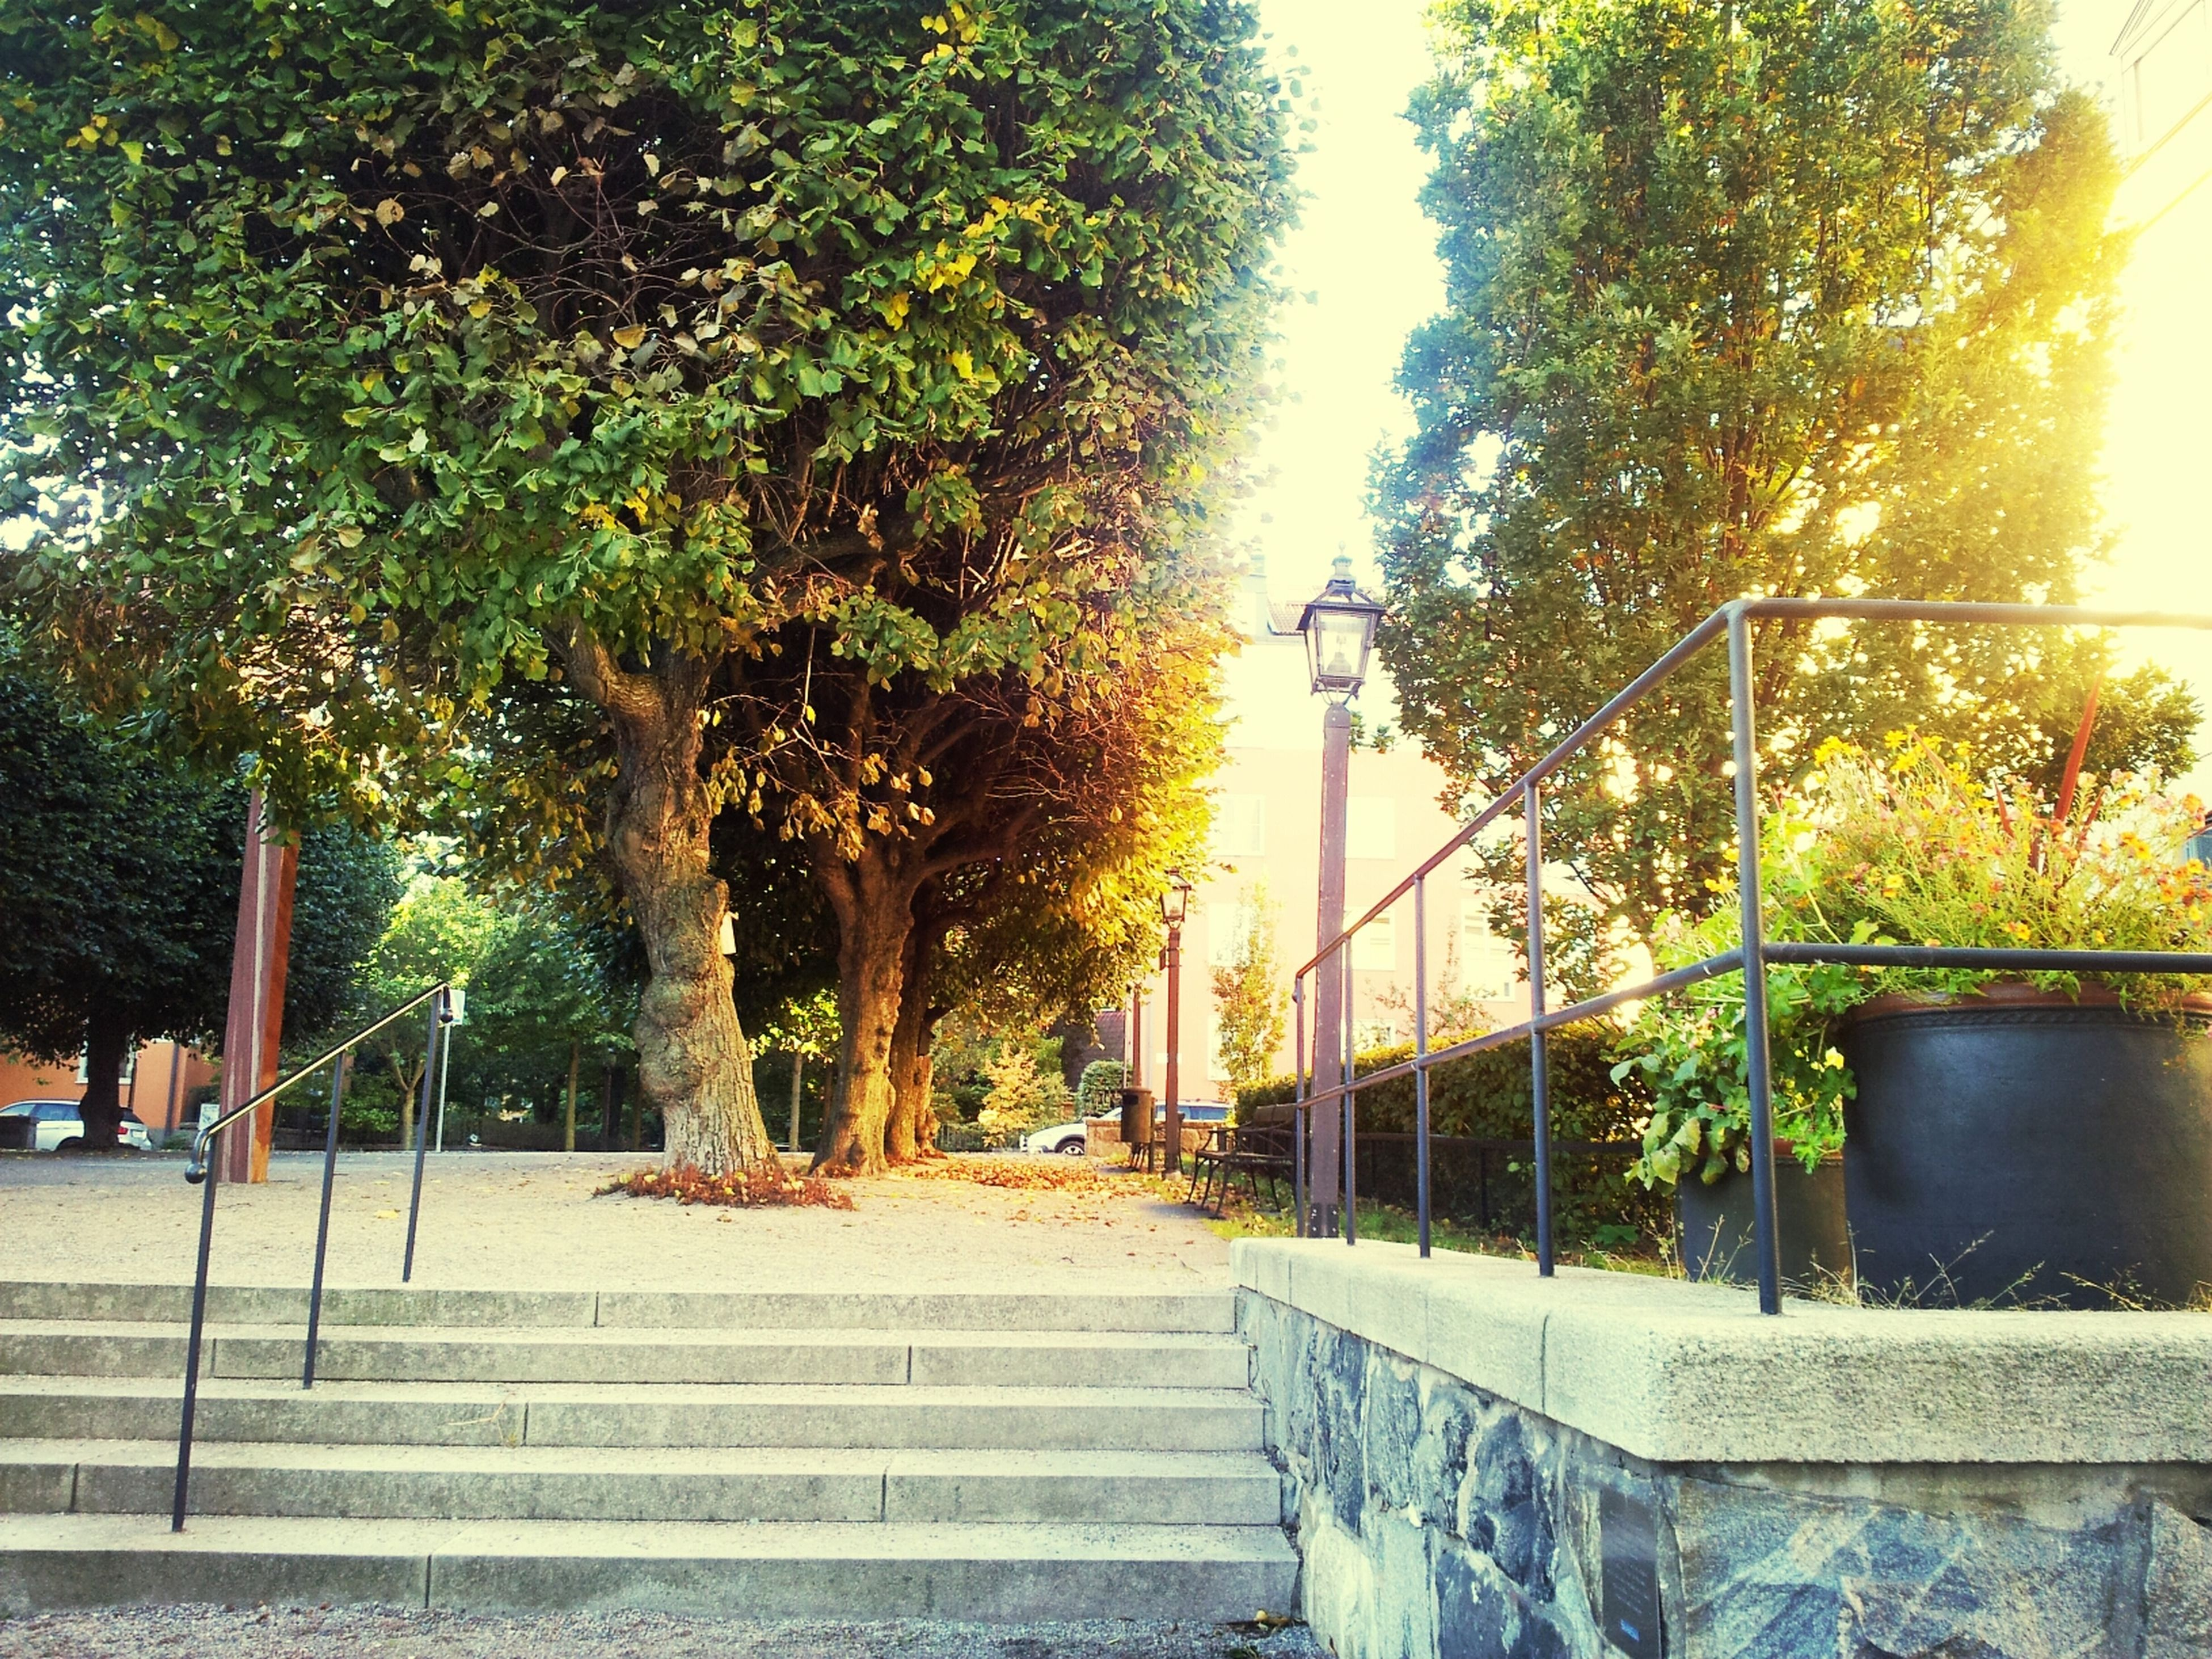 tree, the way forward, built structure, growth, architecture, building exterior, railing, transportation, footpath, street light, green color, sunlight, plant, street, sidewalk, outdoors, walkway, day, clear sky, steps